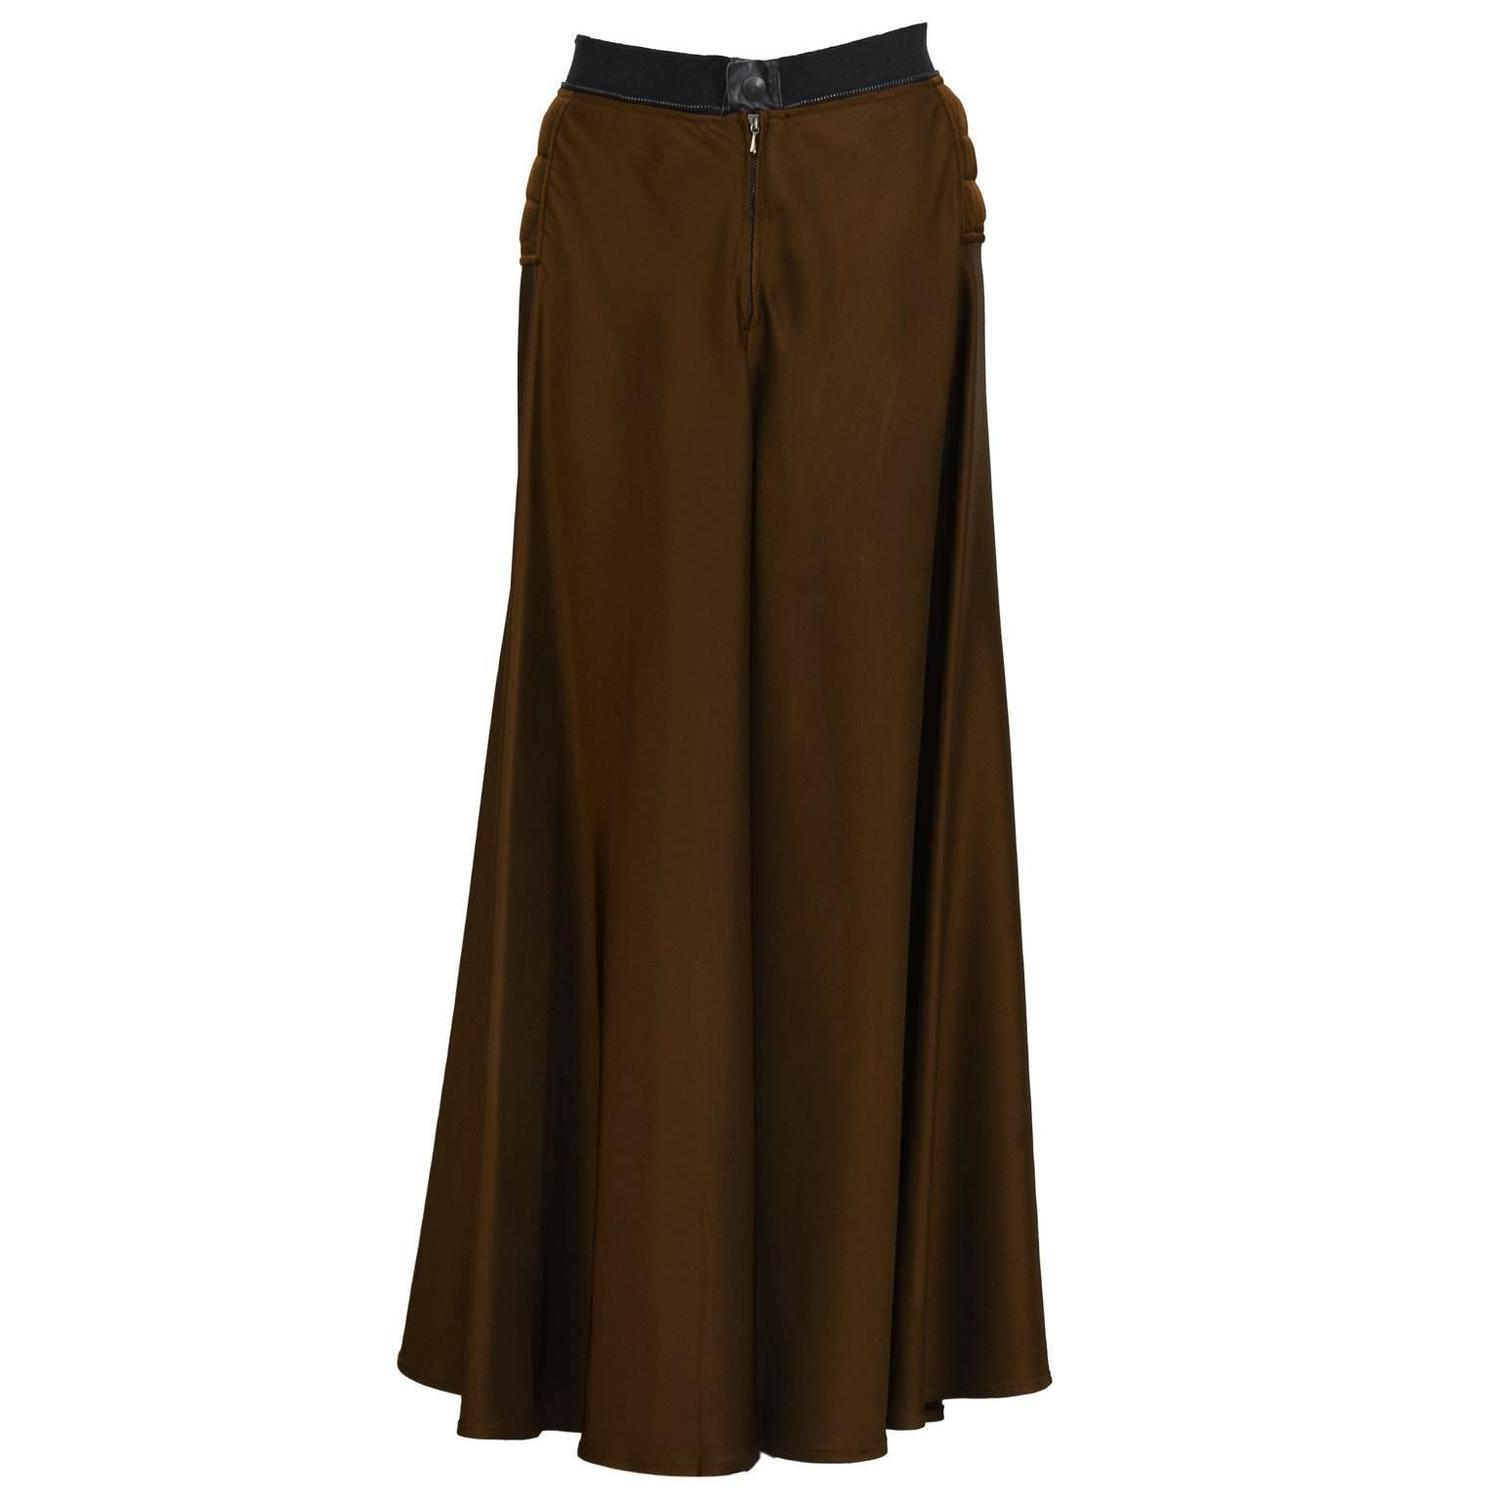 2000 s gaultier brown maxi skirt for sale at 1stdibs